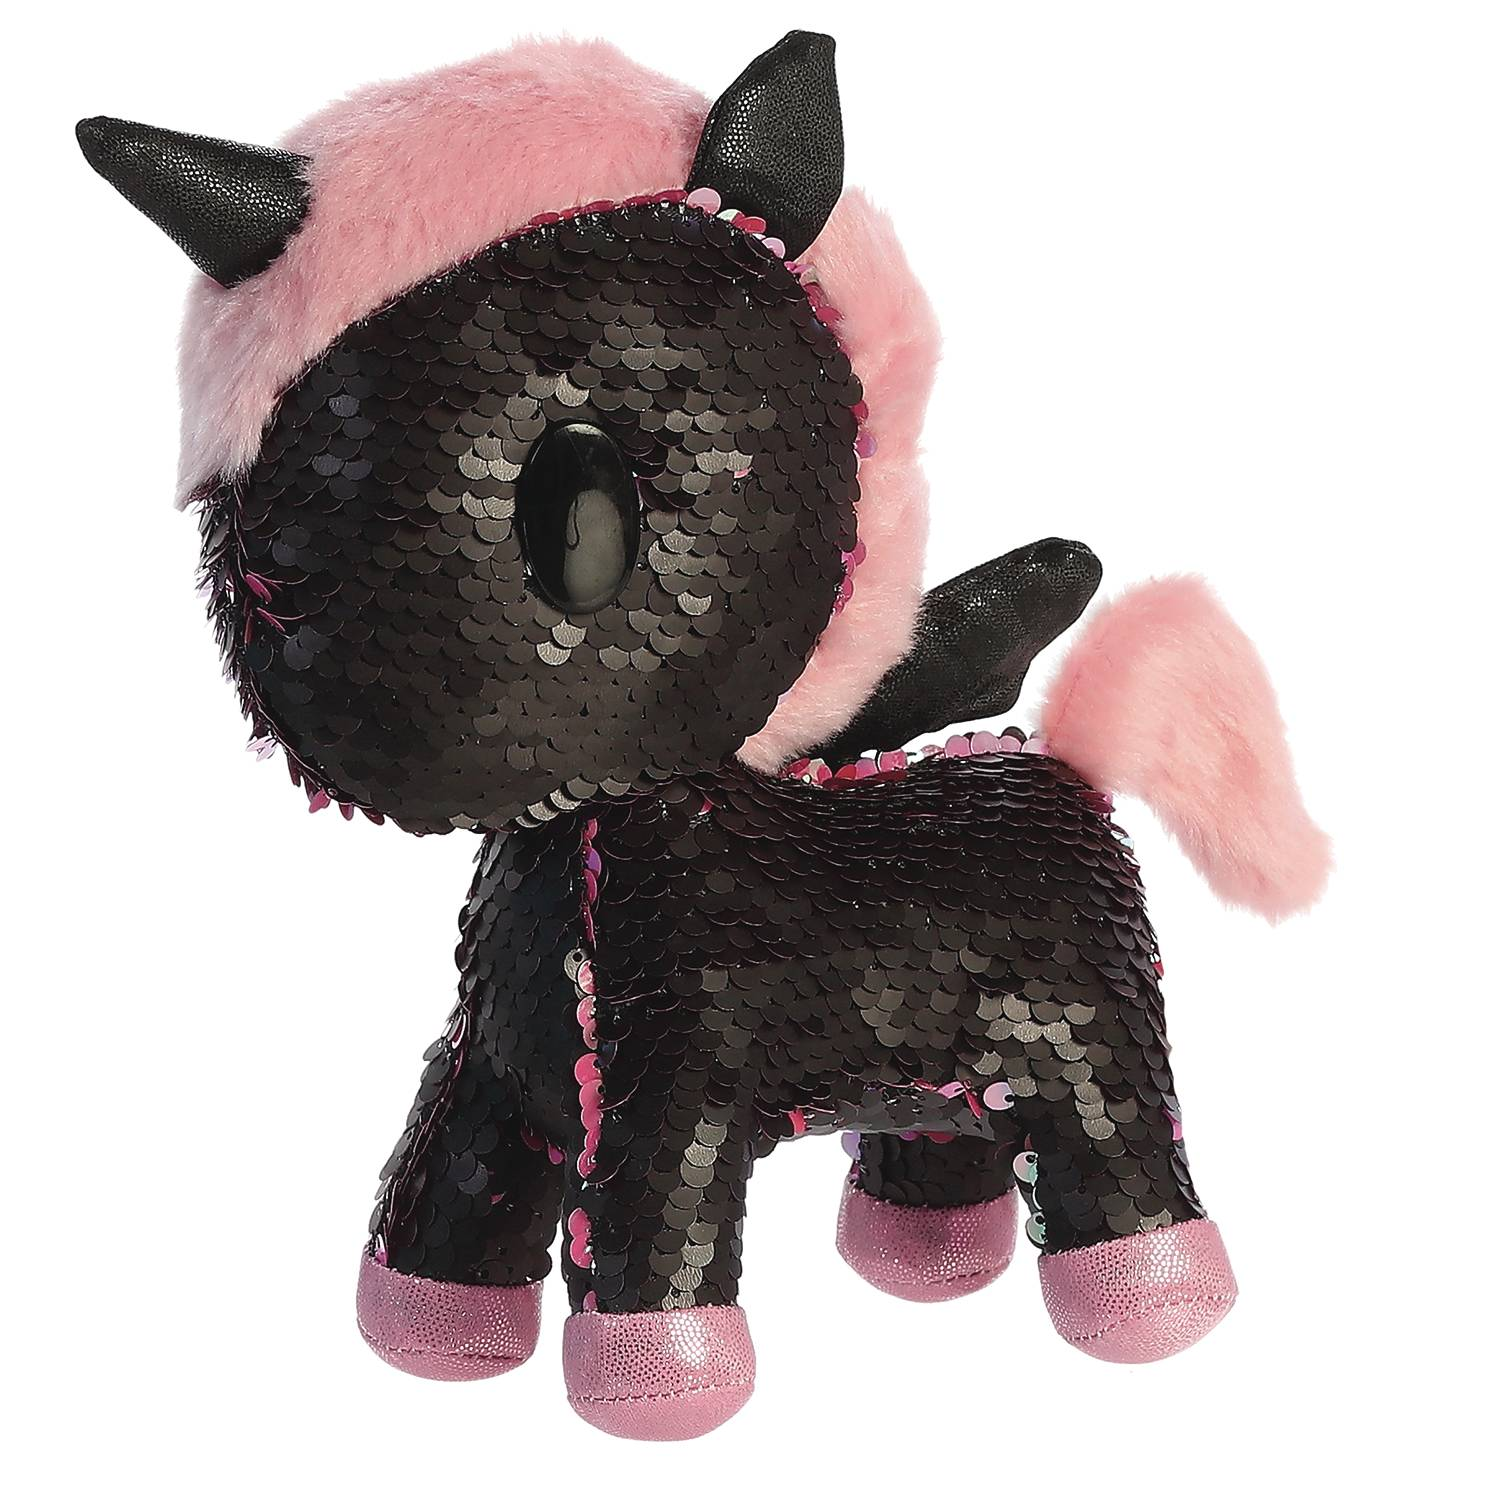 TOKIDOKI UNICORNO SEQUIN DJ SPARKLE 7.5IN PLUSH